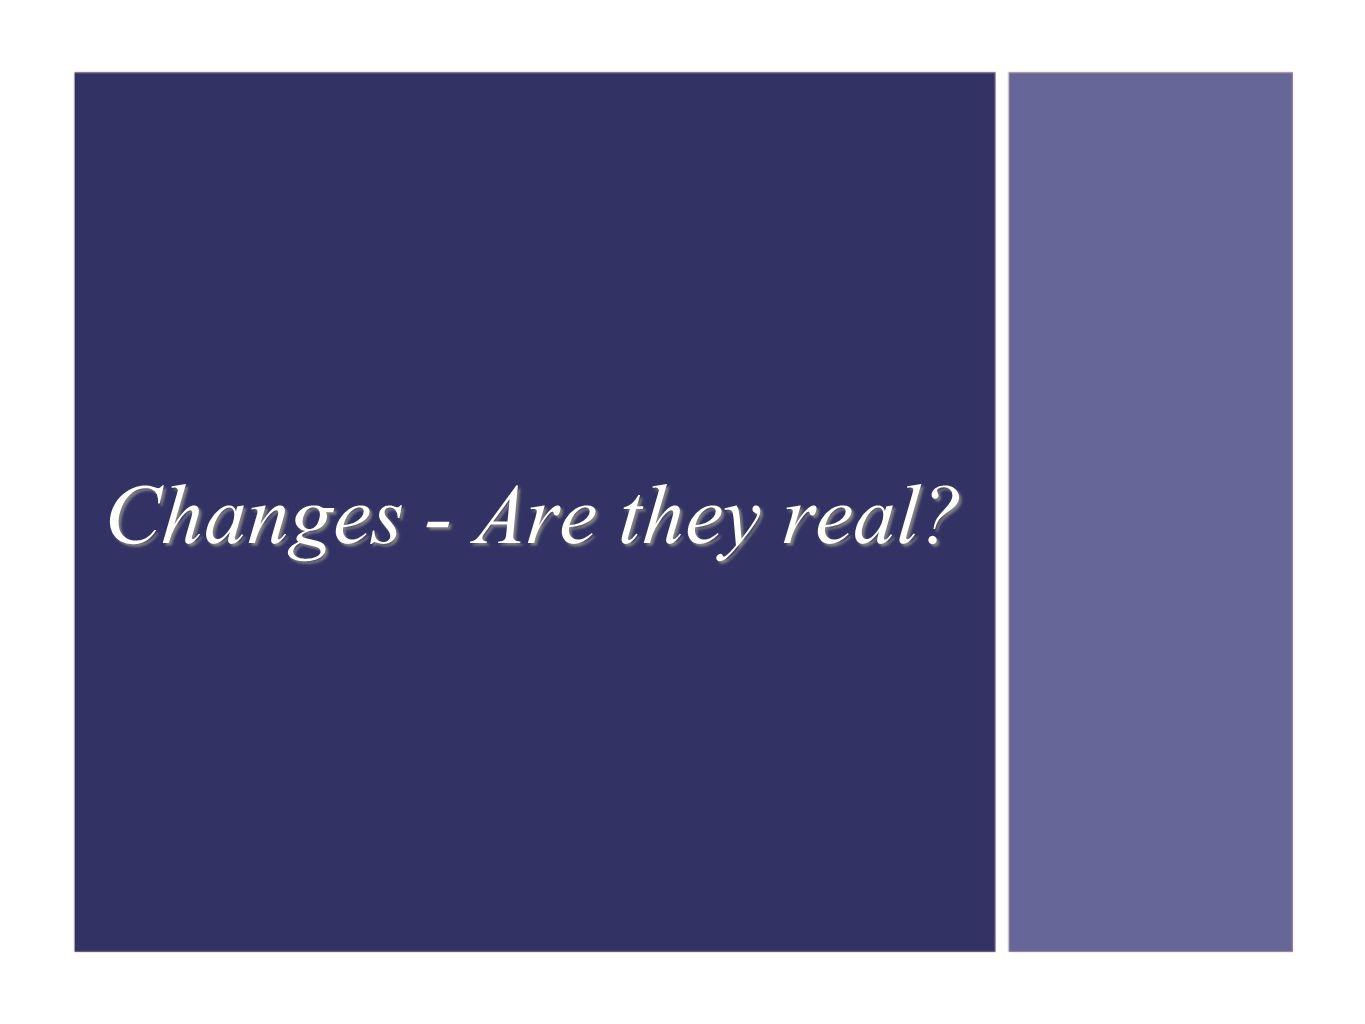 Changes - Are they real?